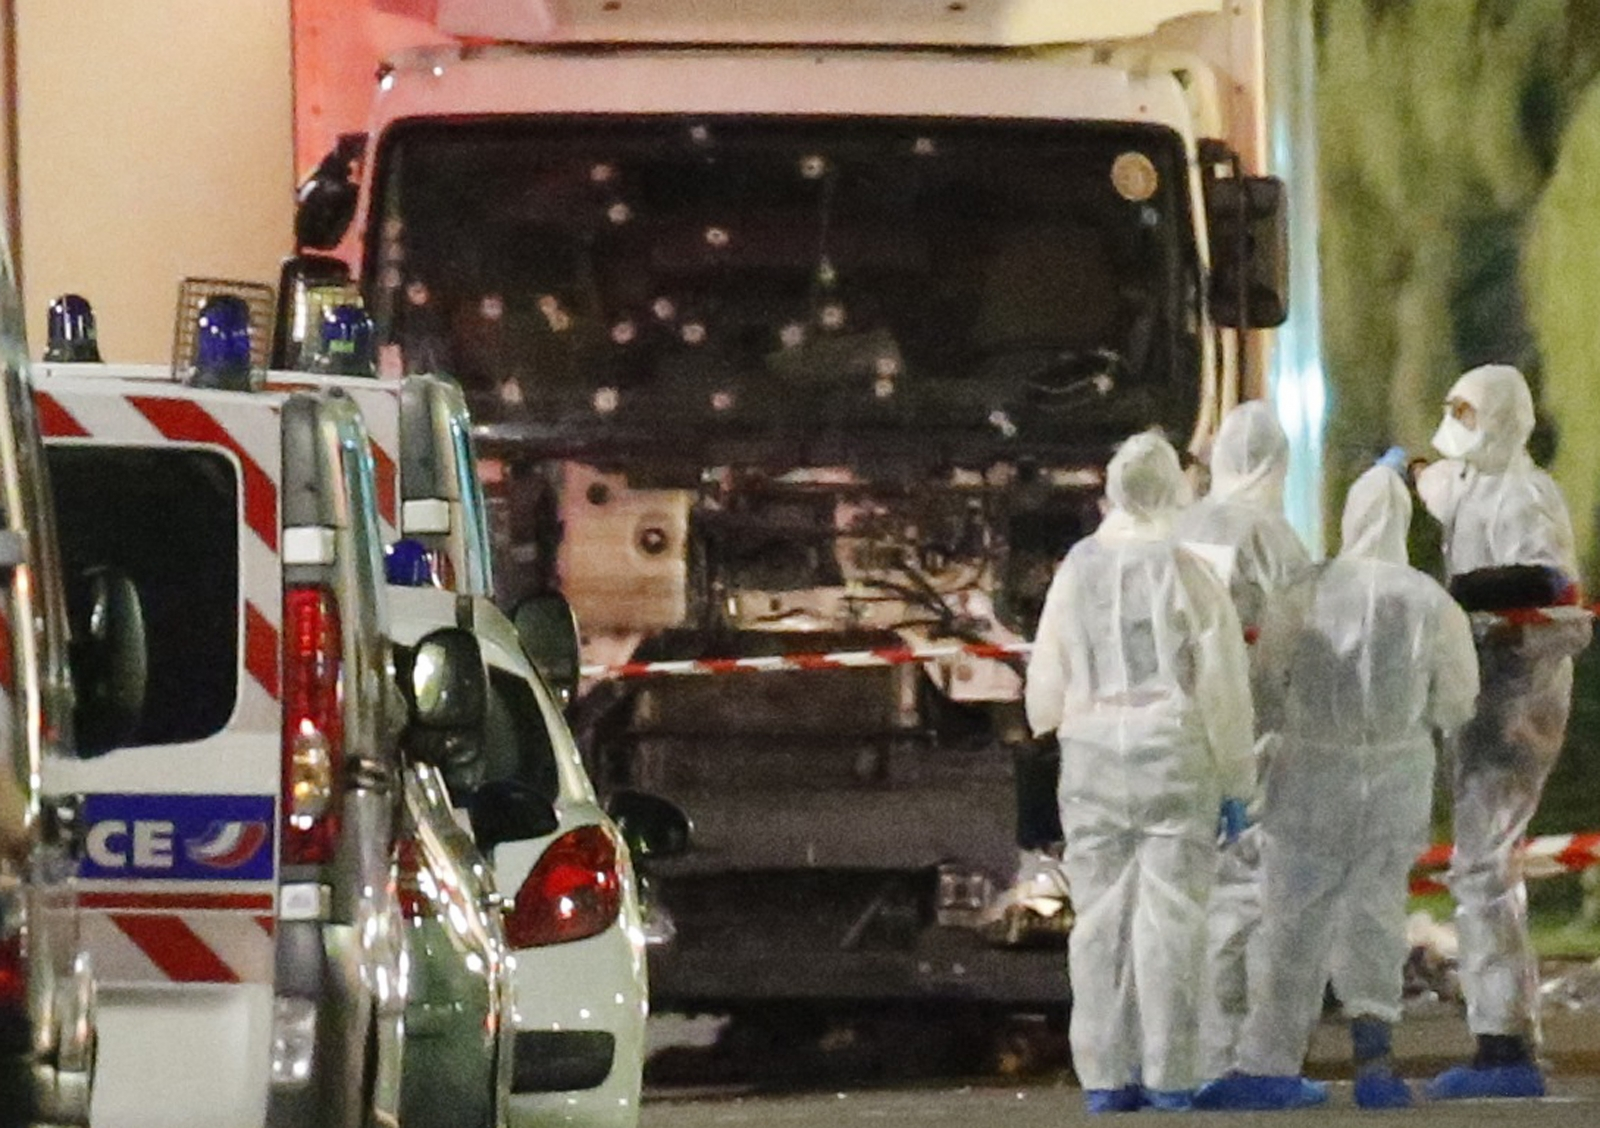 Truck in Nice attack